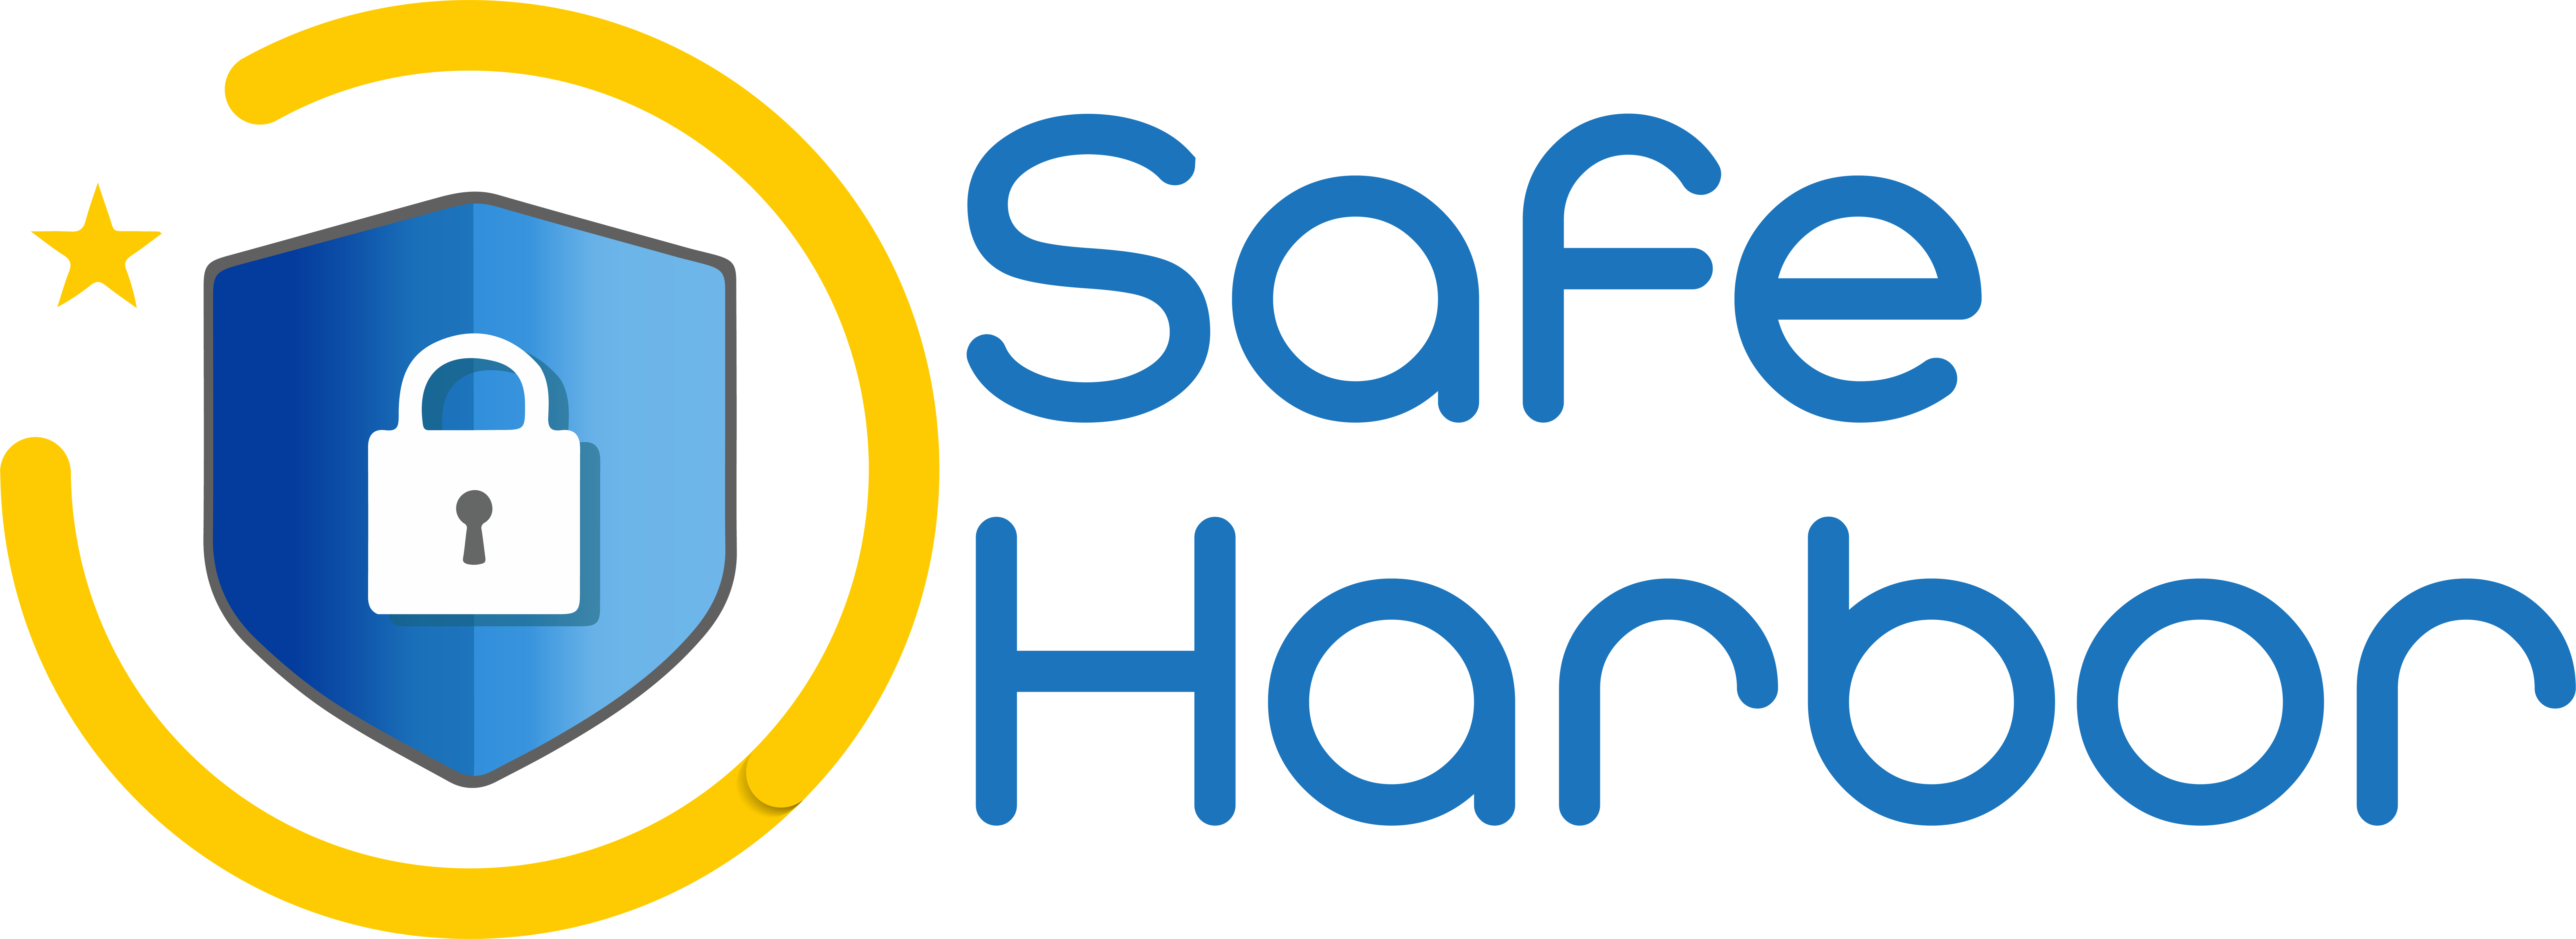 Safe Harbor - The project